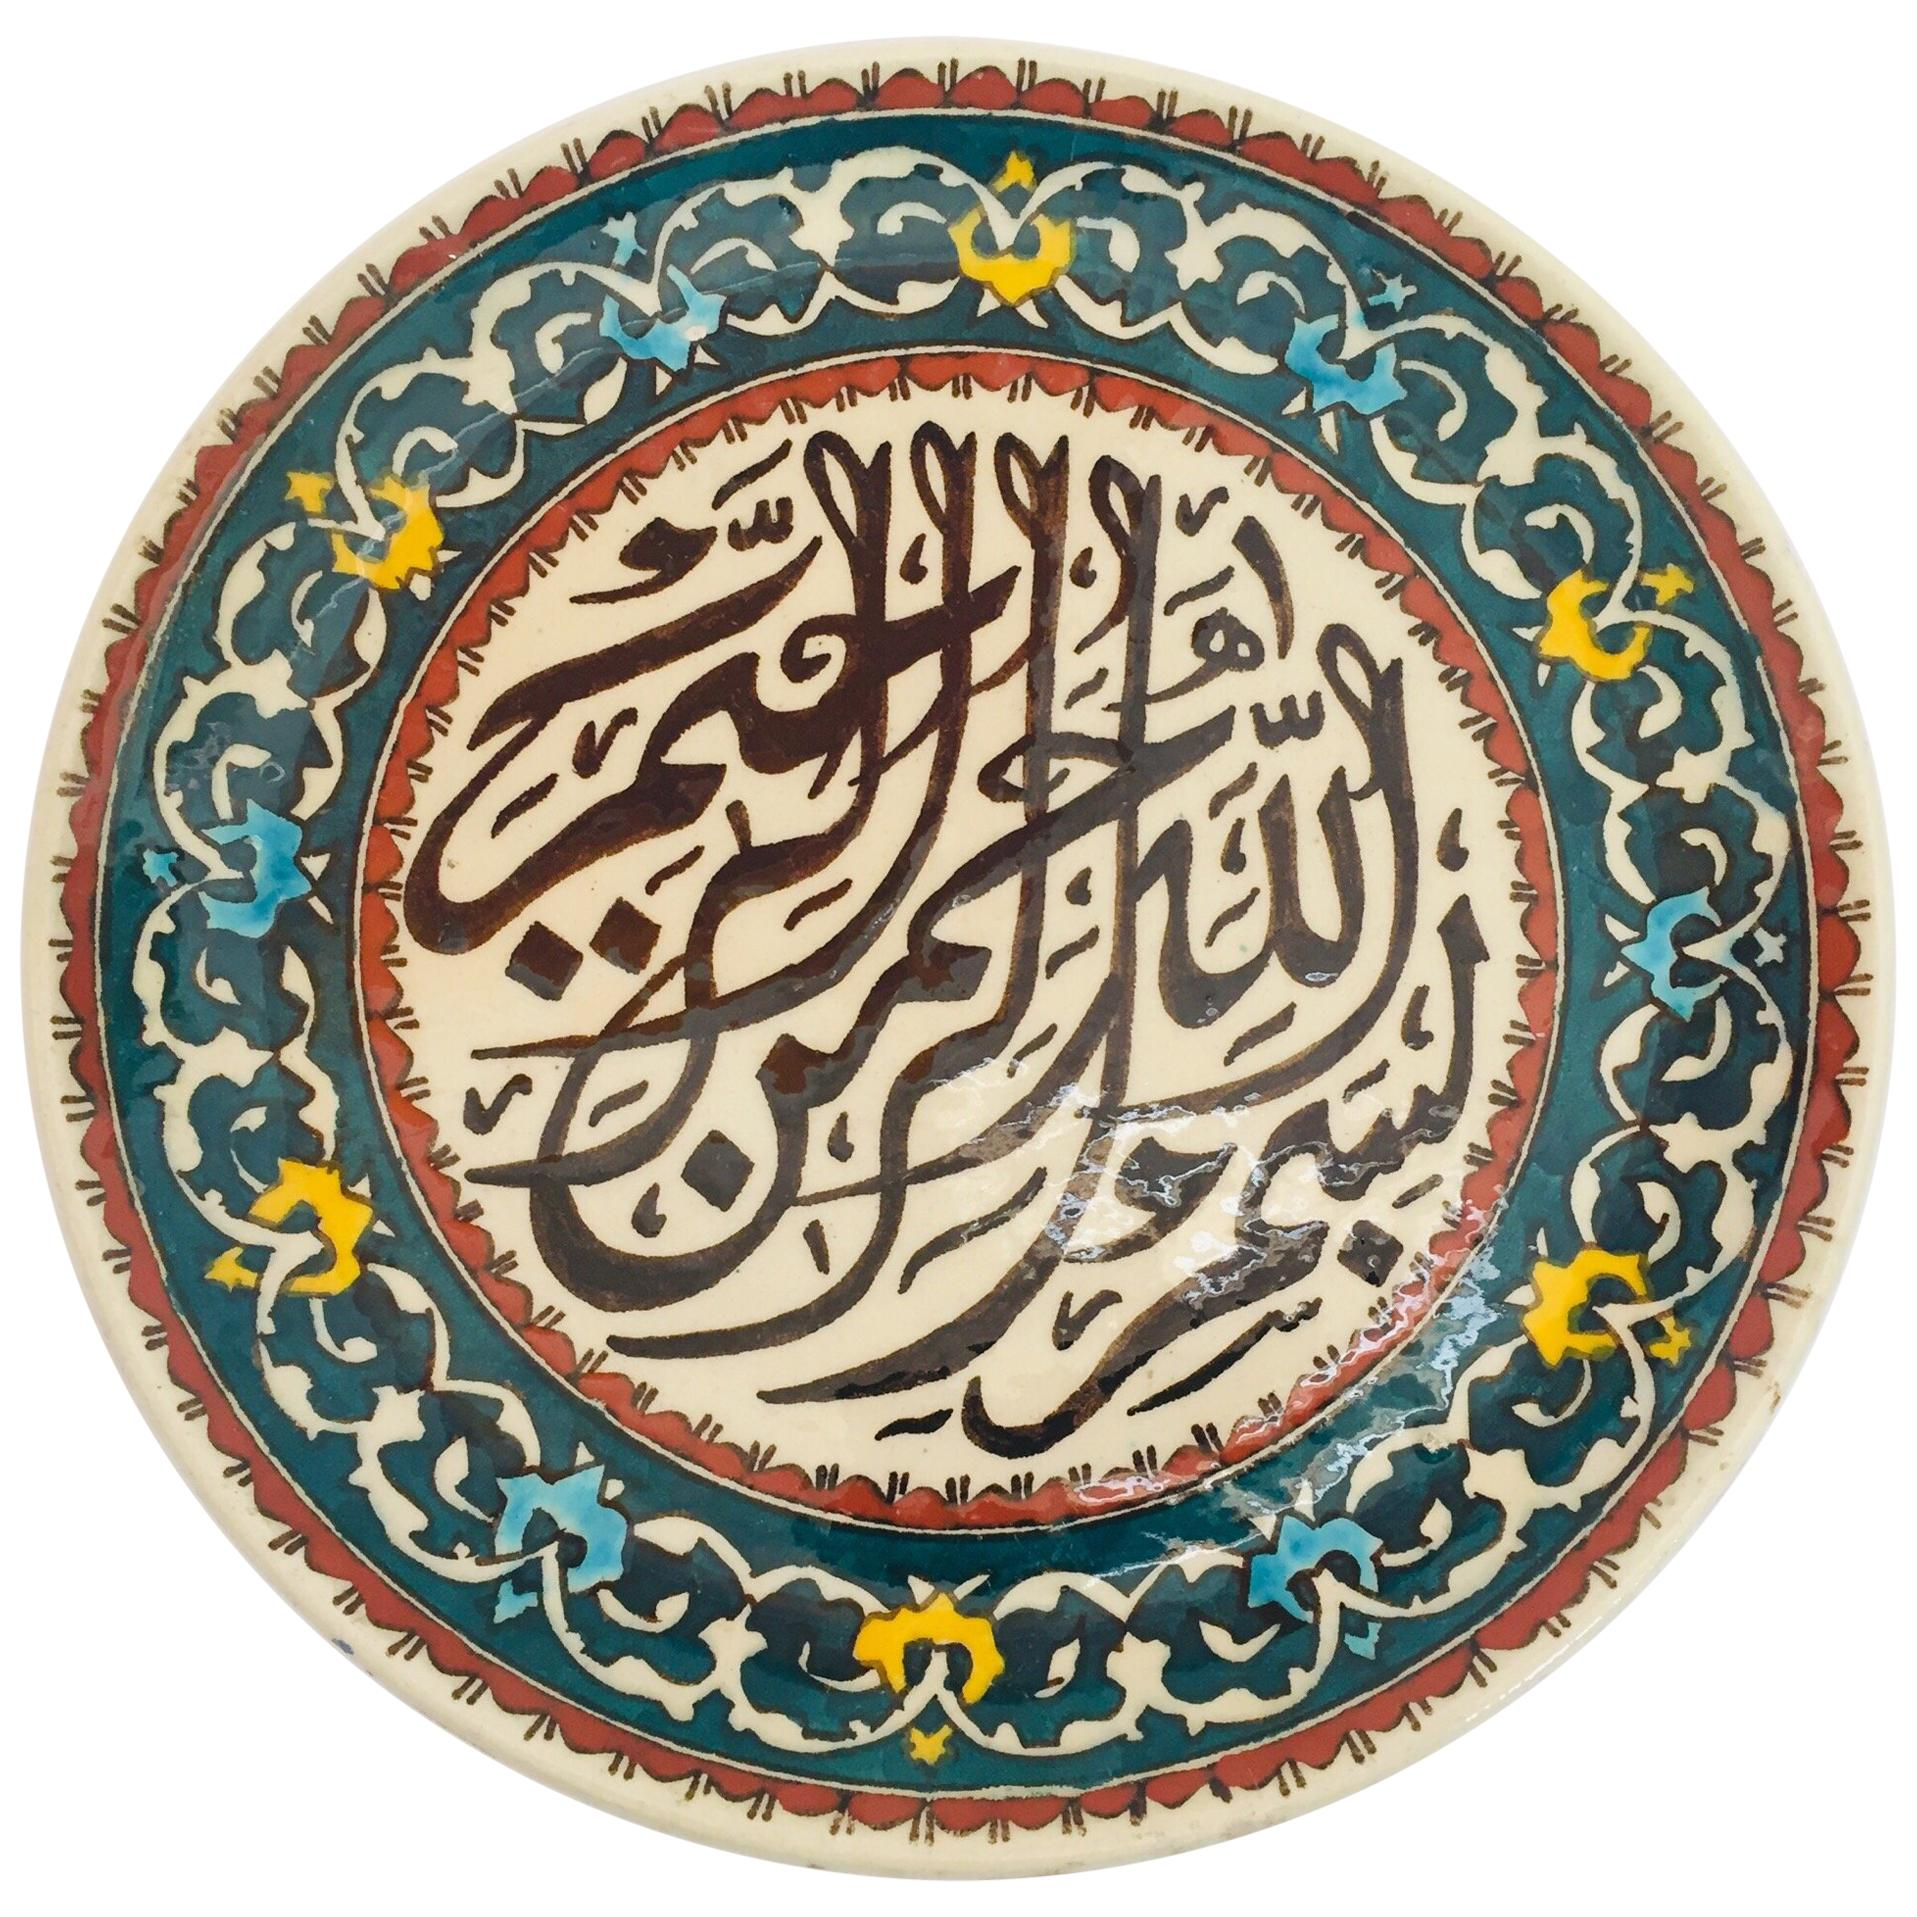 Polychrome Hand Painted Ceramic Decorative Plate with Islamic Calligraphy